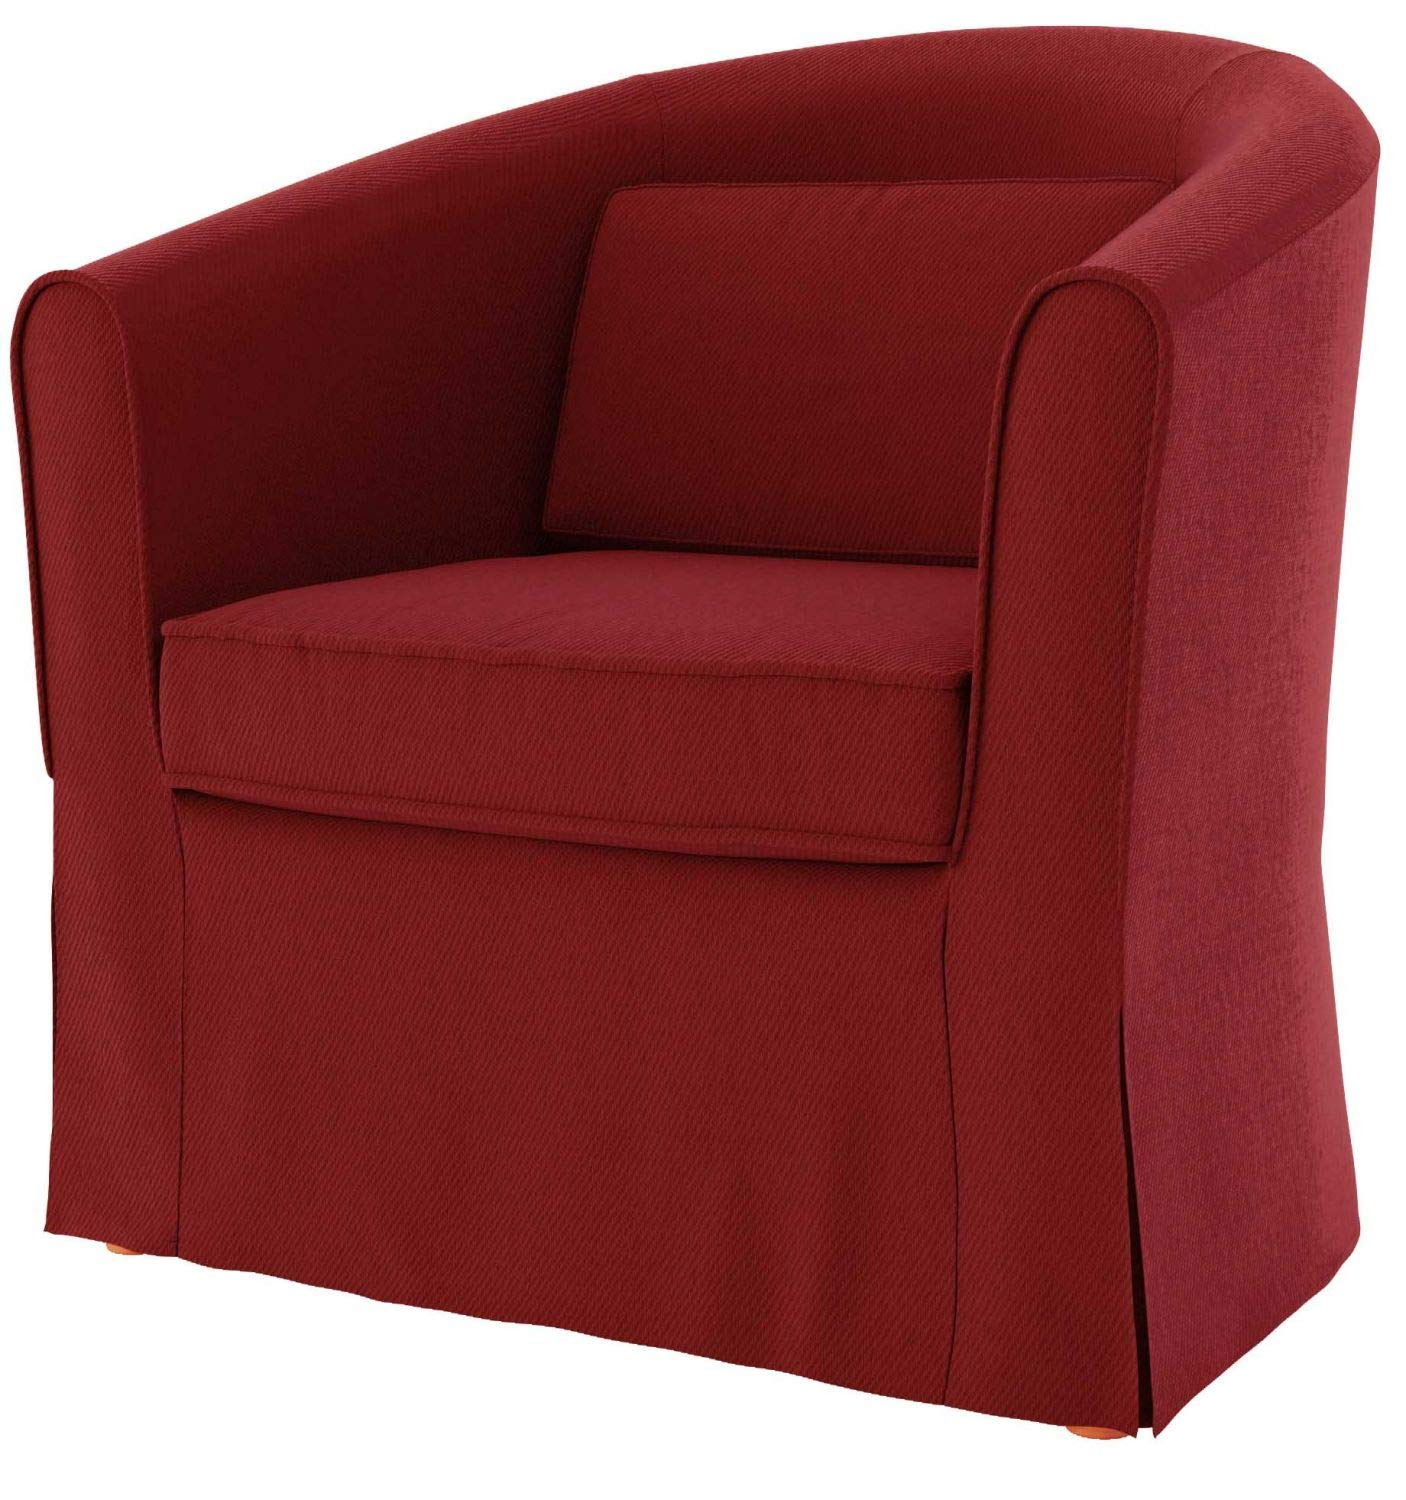 TLY Cotton Tullsta Armchair Cover for The IKEA Tullsta Chair Slipcover Replacement-Cotton Red